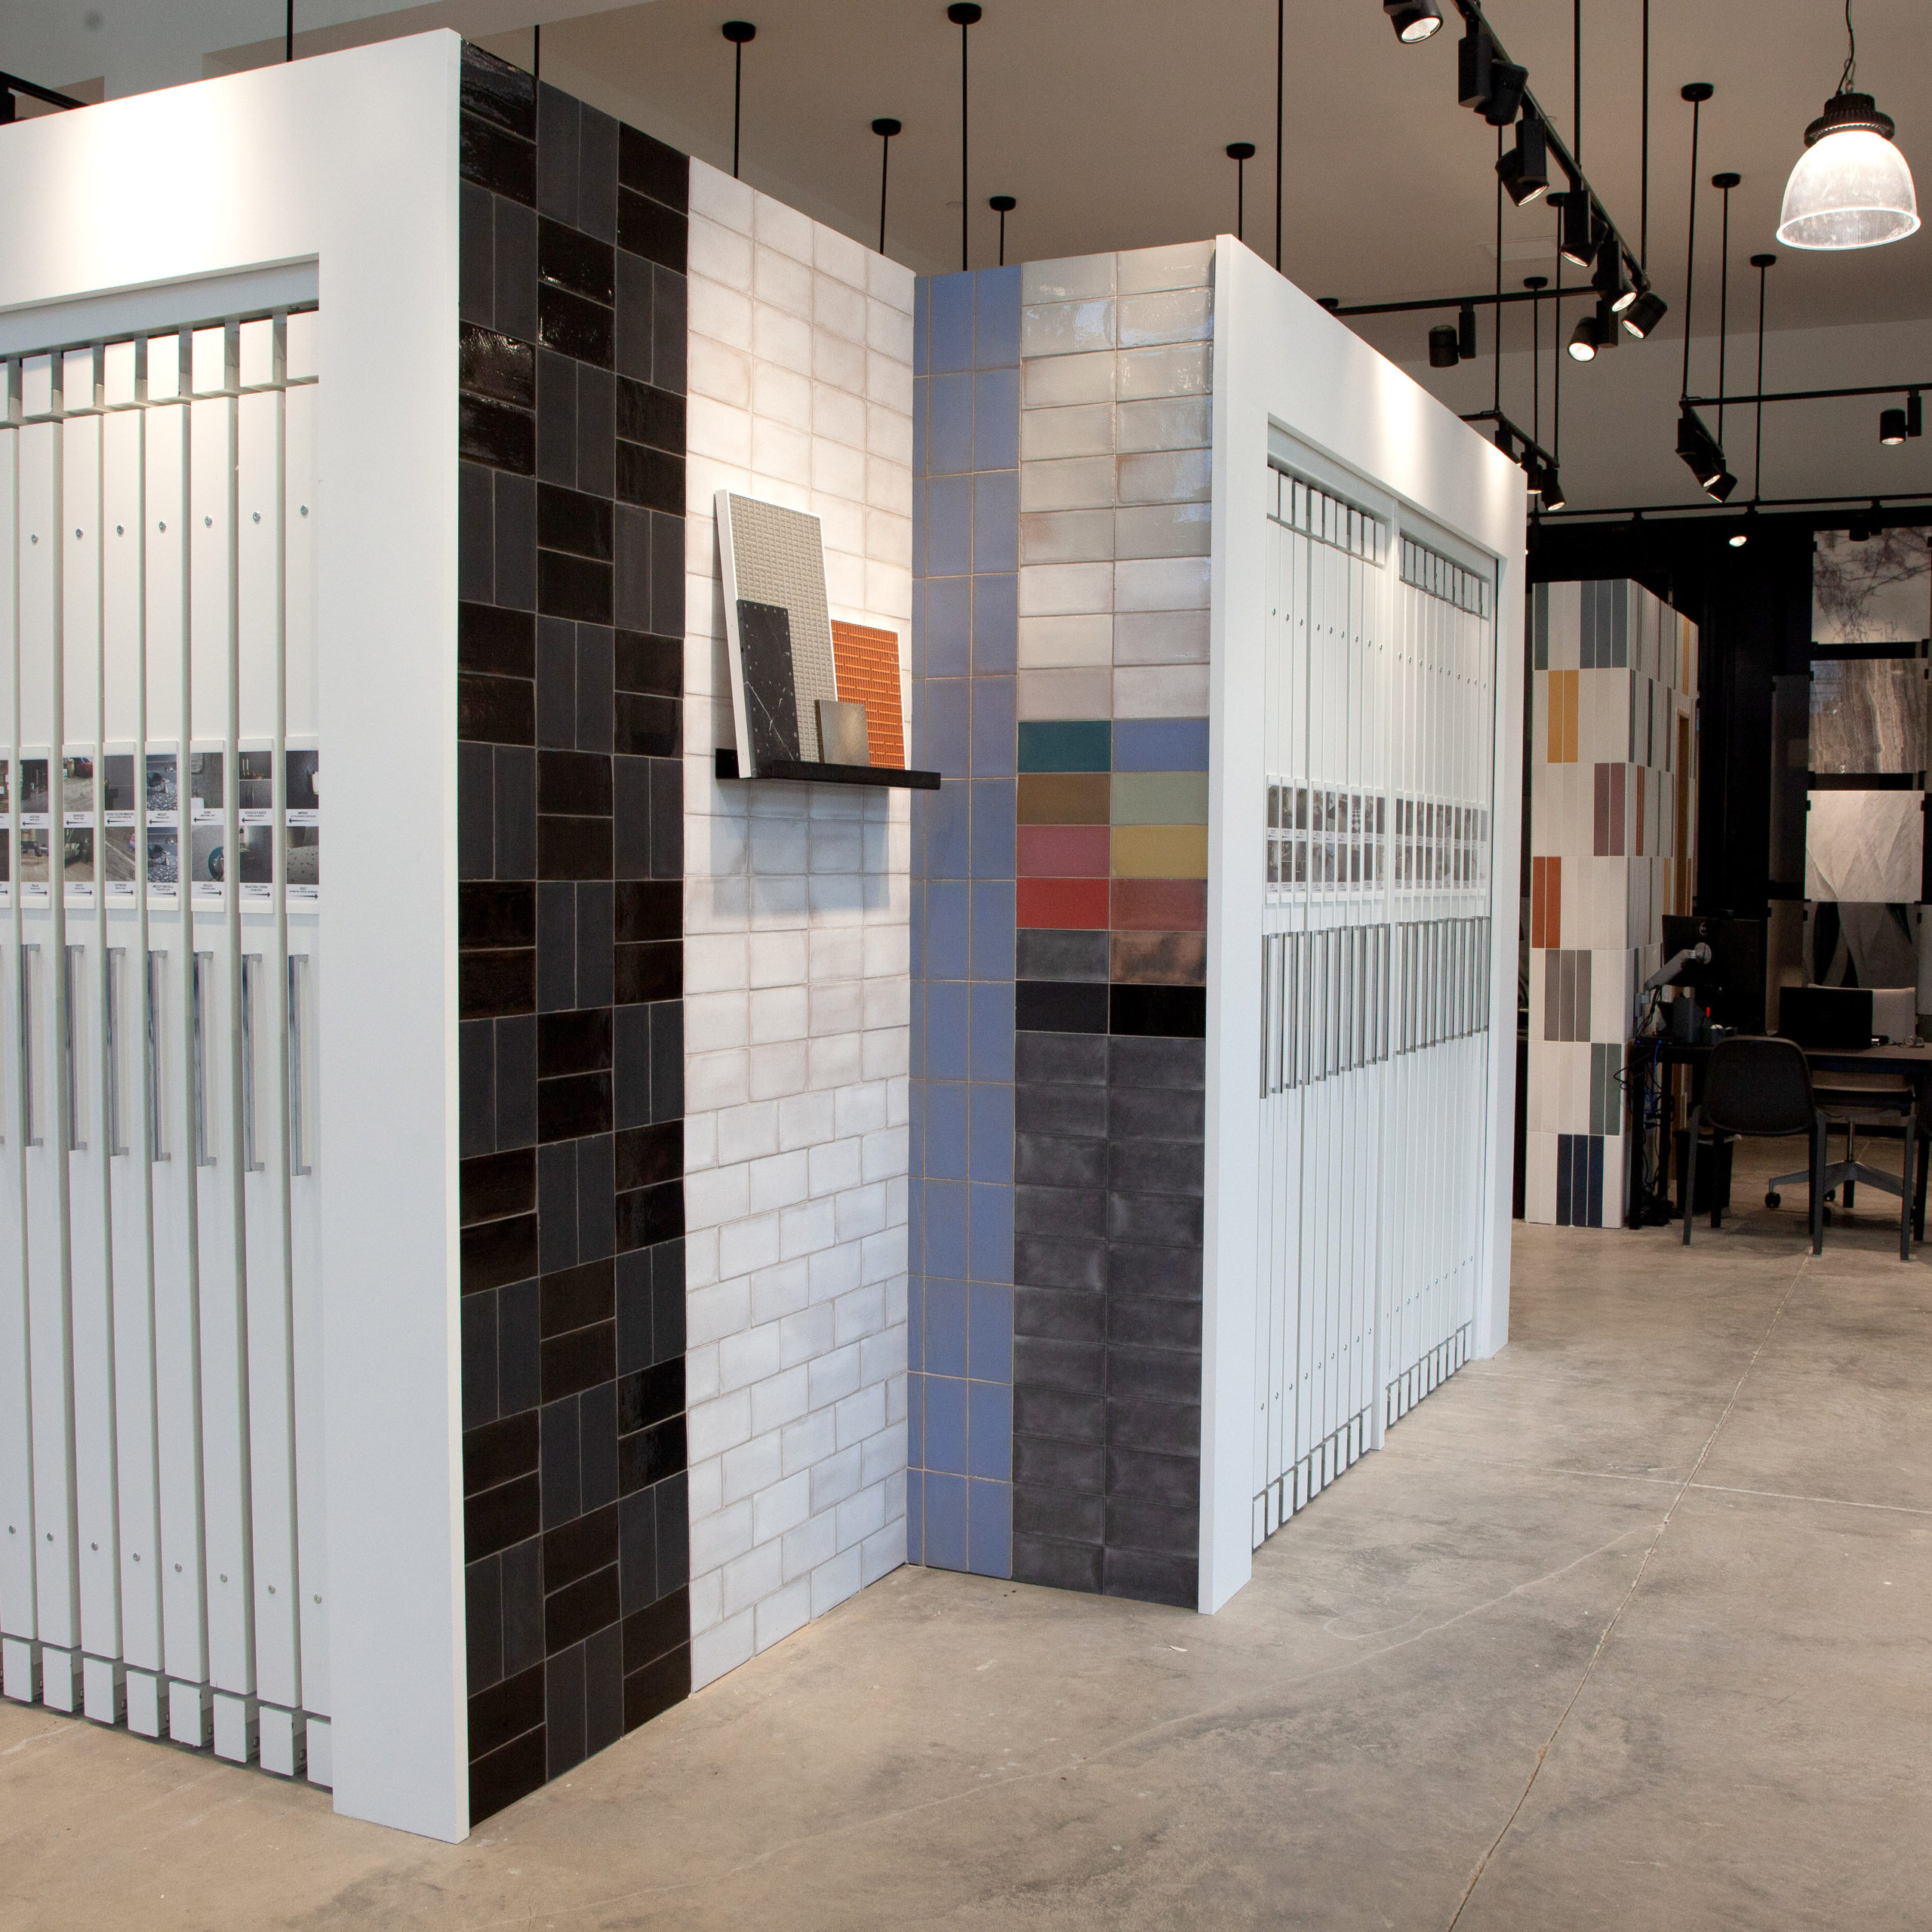 Nemo Tile + Stone, the 100-year-old surfacing materials company, based in New York City, has opened a 5,700-square-foot showroom on Flying Point Road in Southampton.